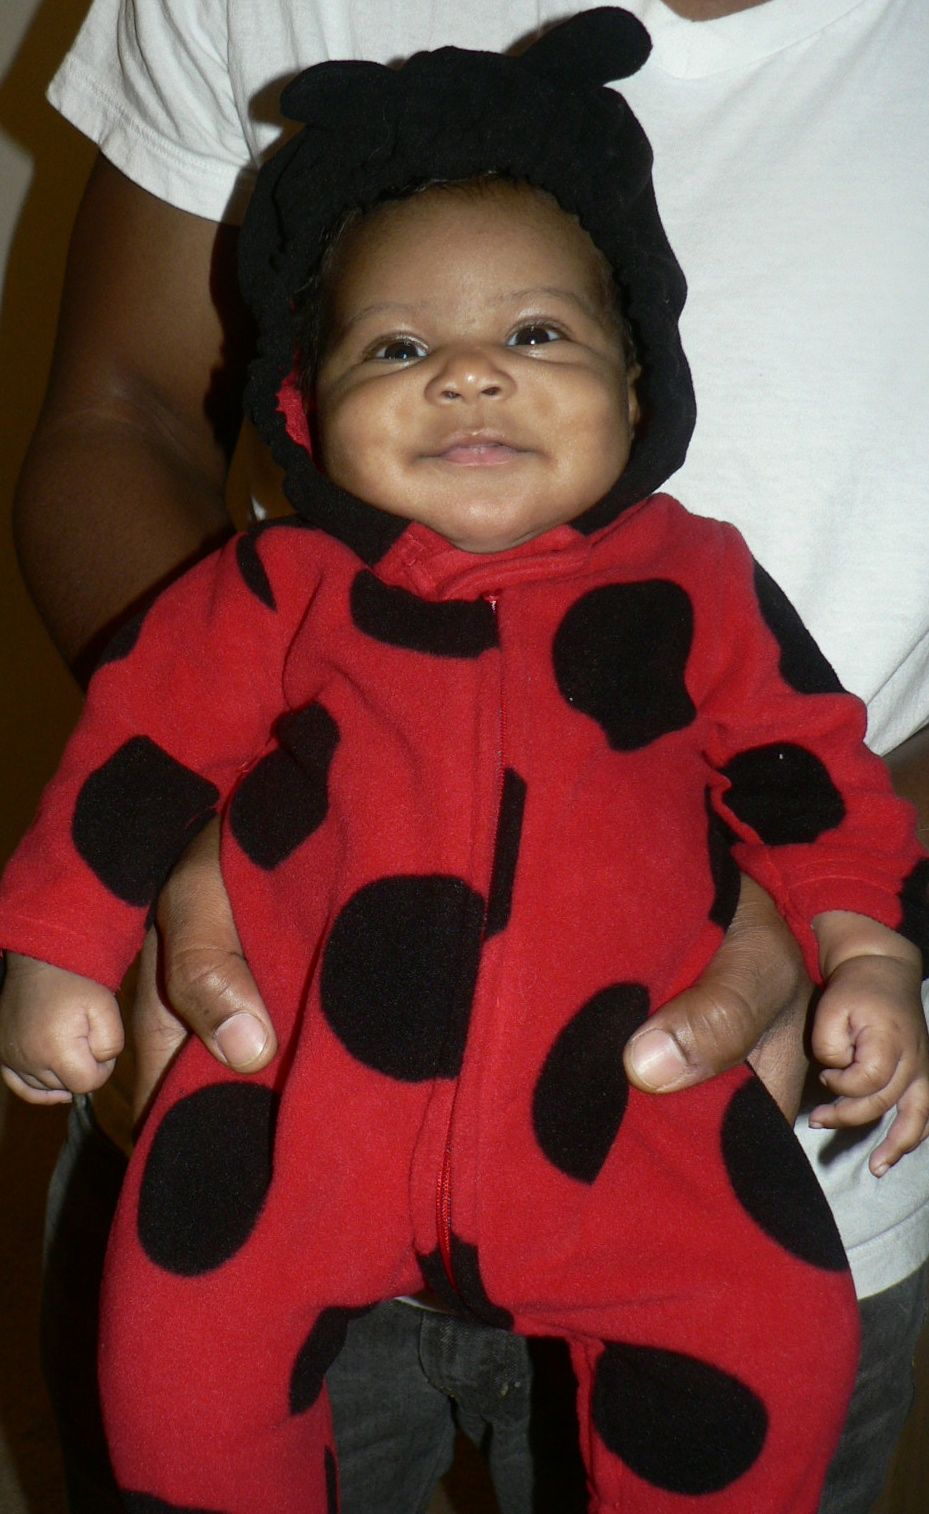 The Angry Little Lady Bug